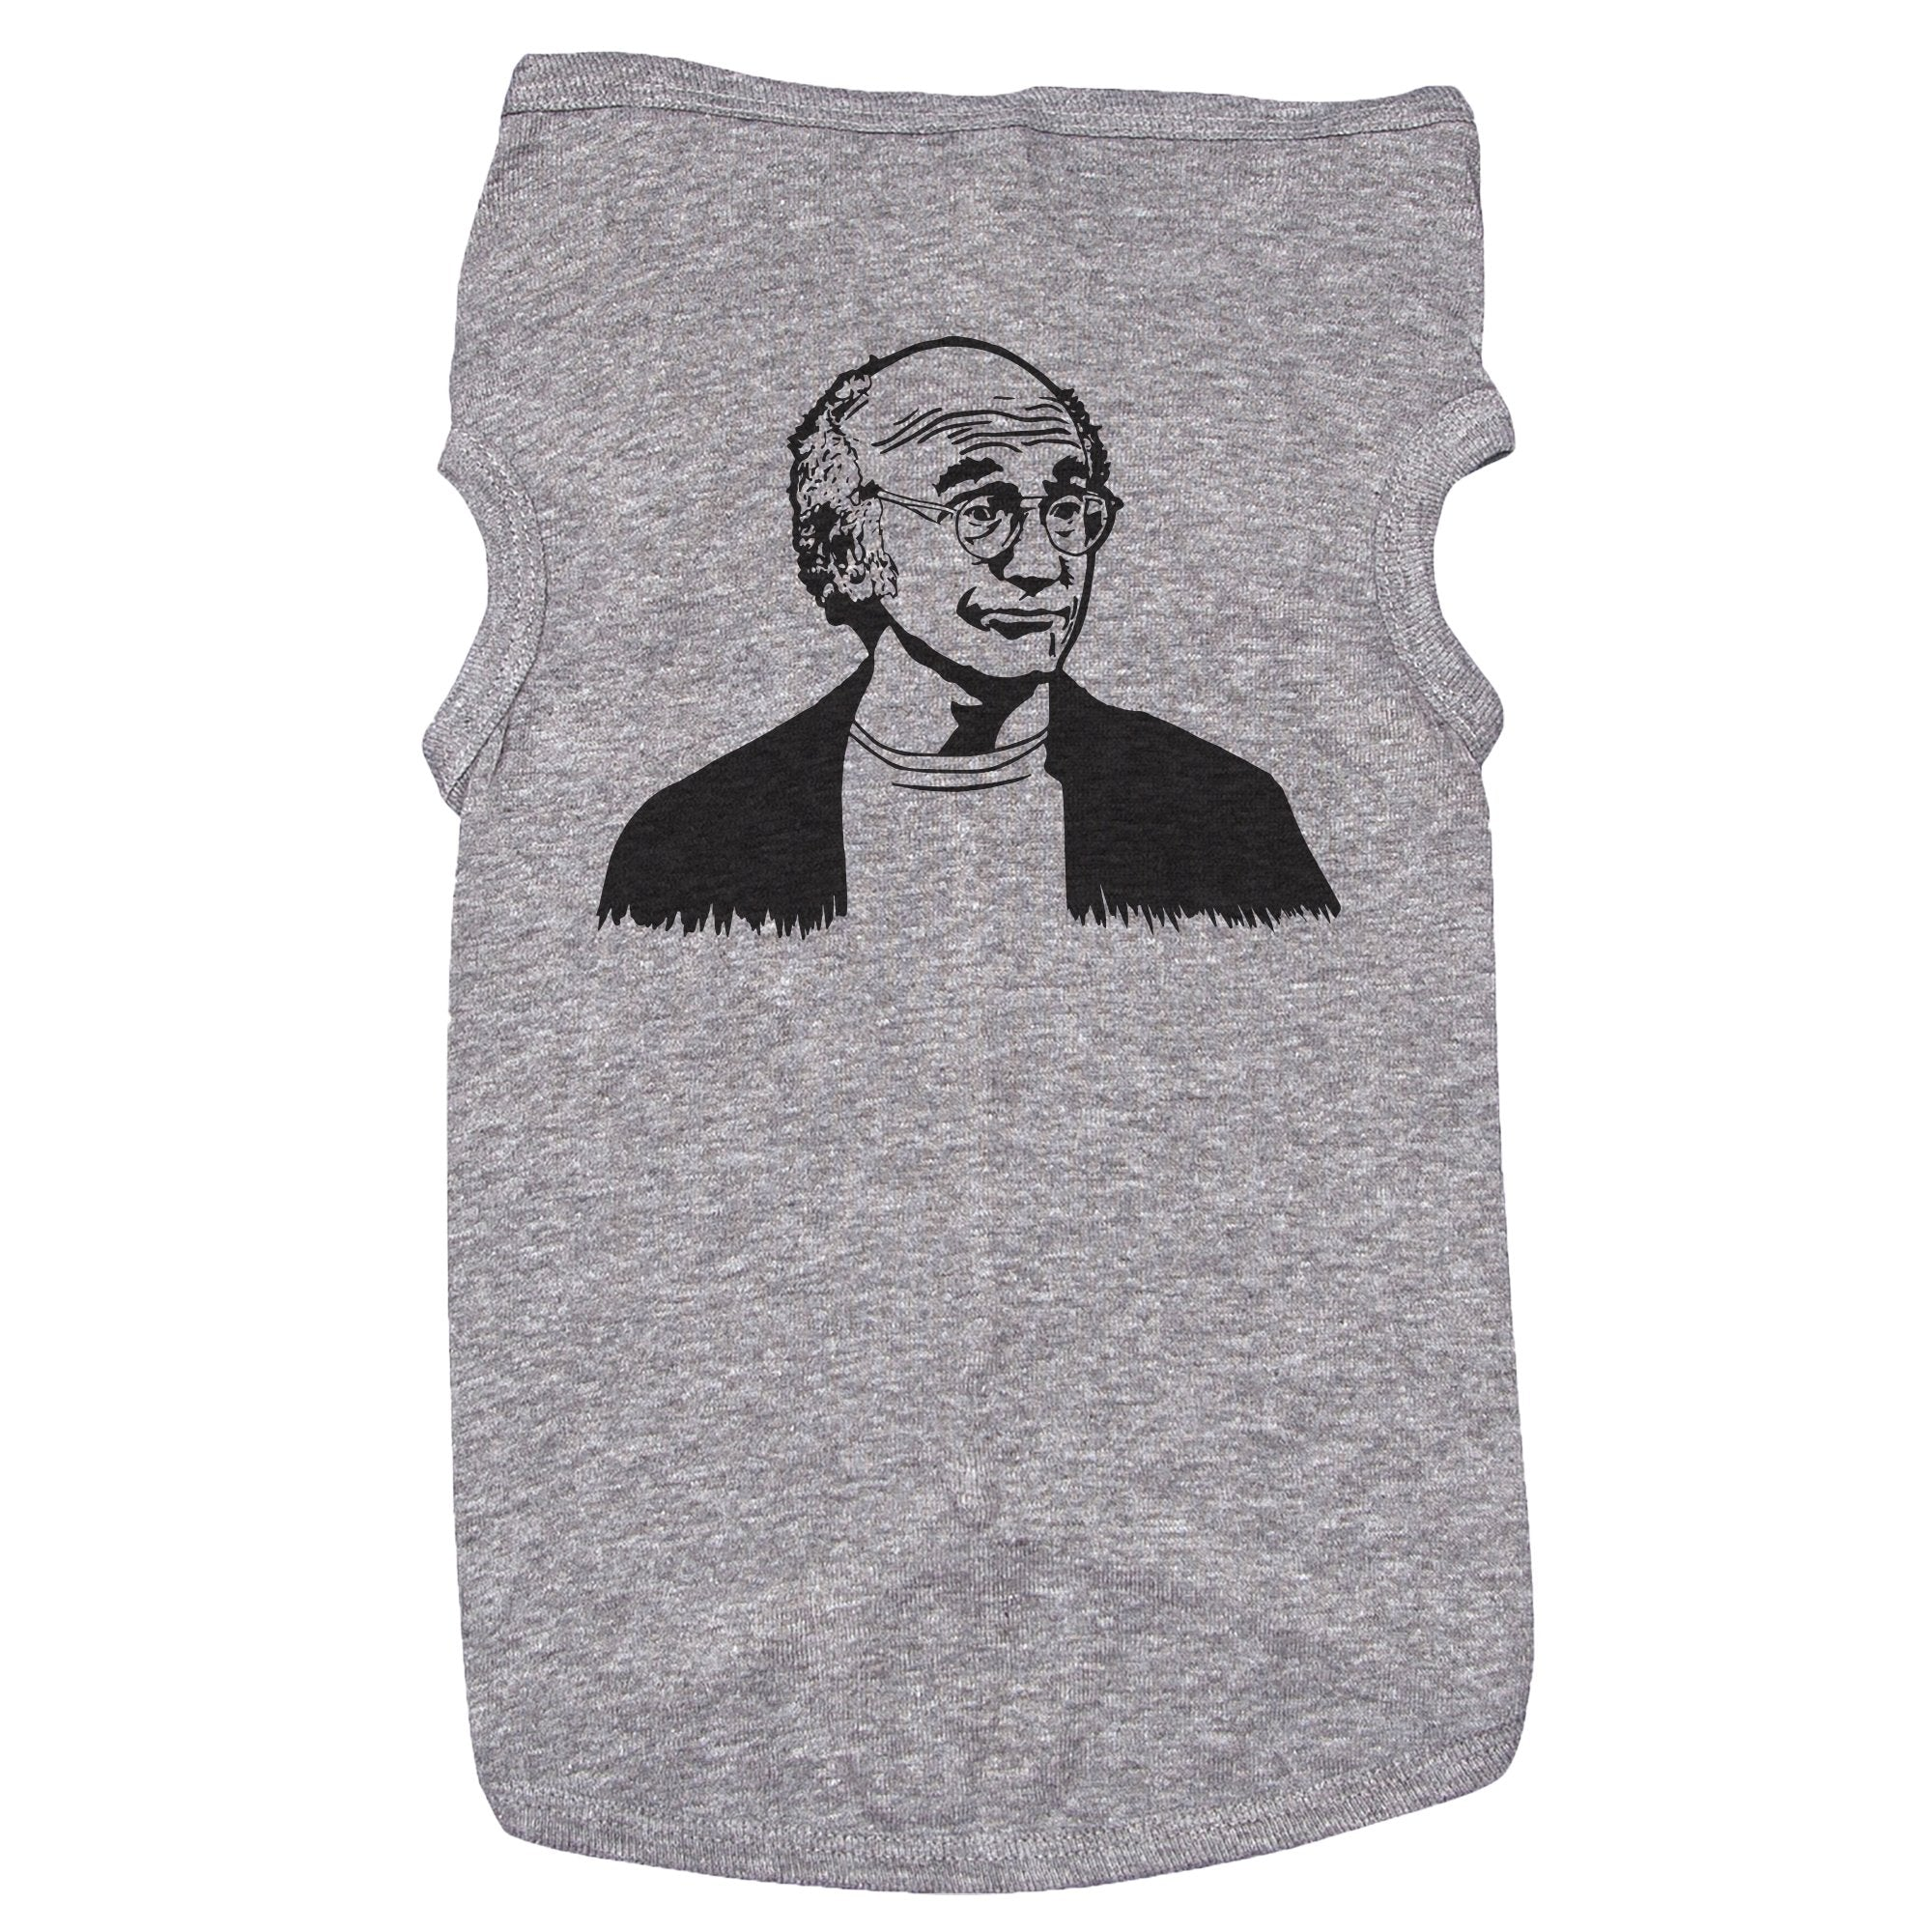 Grey Dog T-Shirt with Larry David Graphic